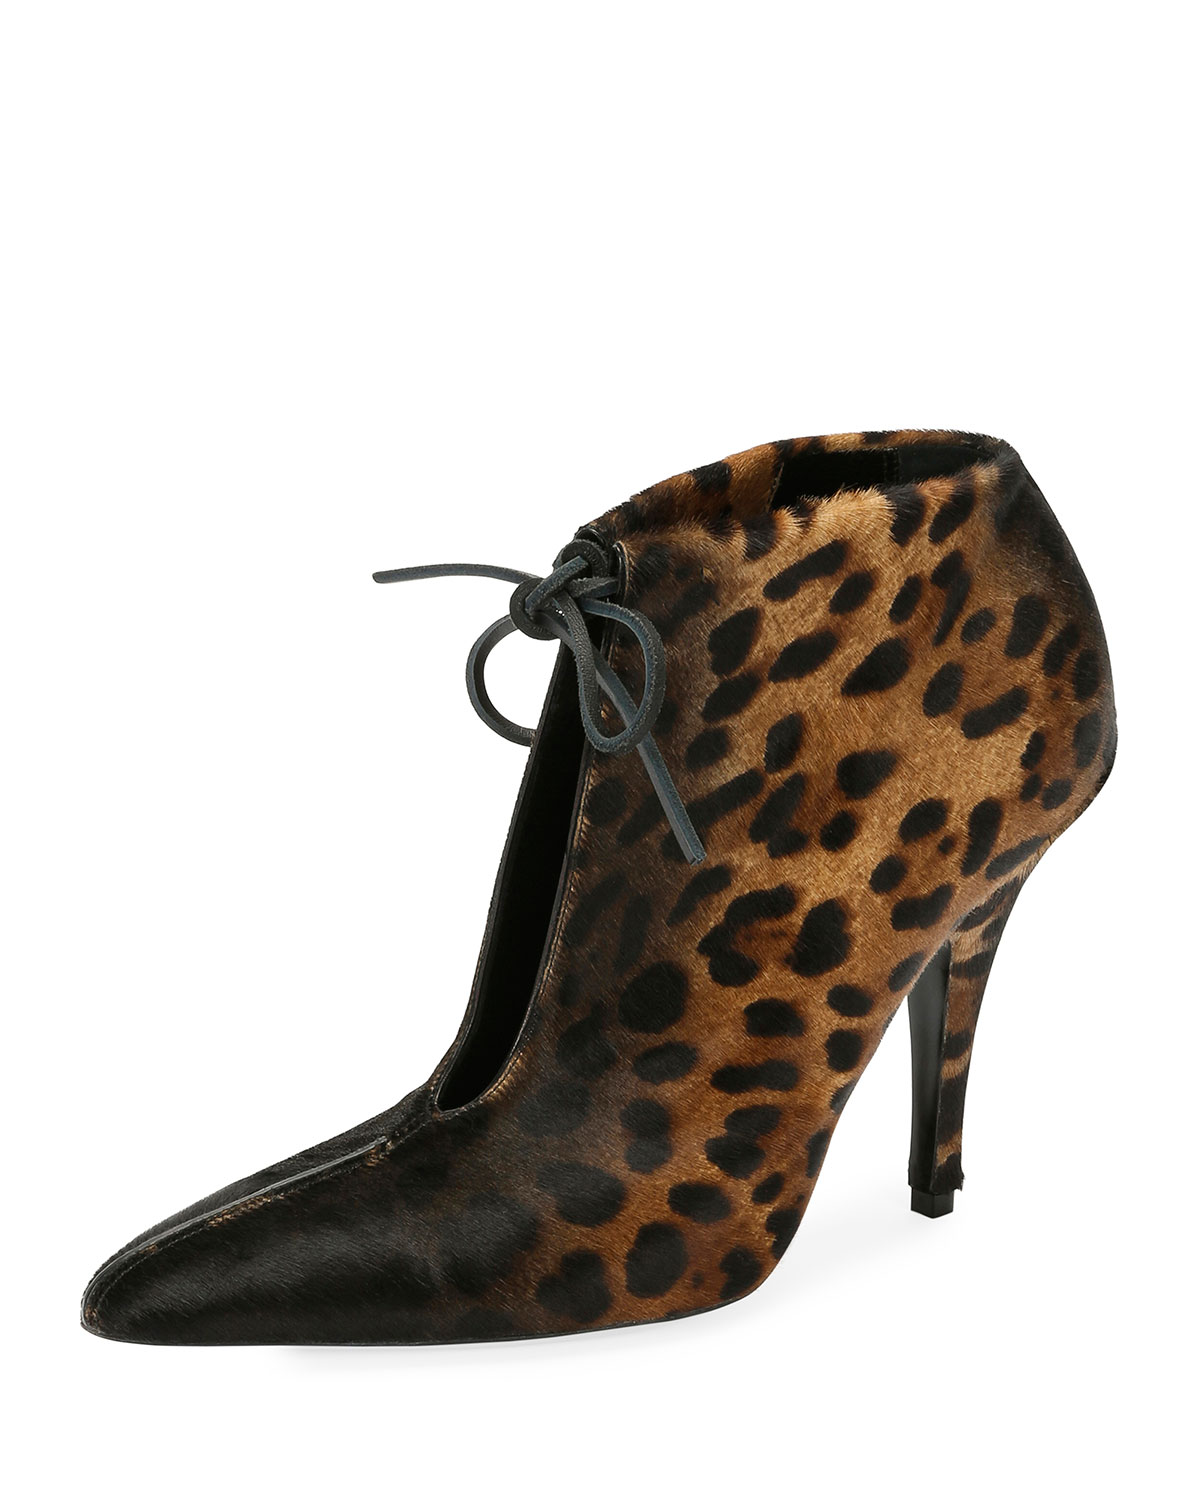 Leopard-Print Ankle-Tie 105mm Bootie, Black/Multi